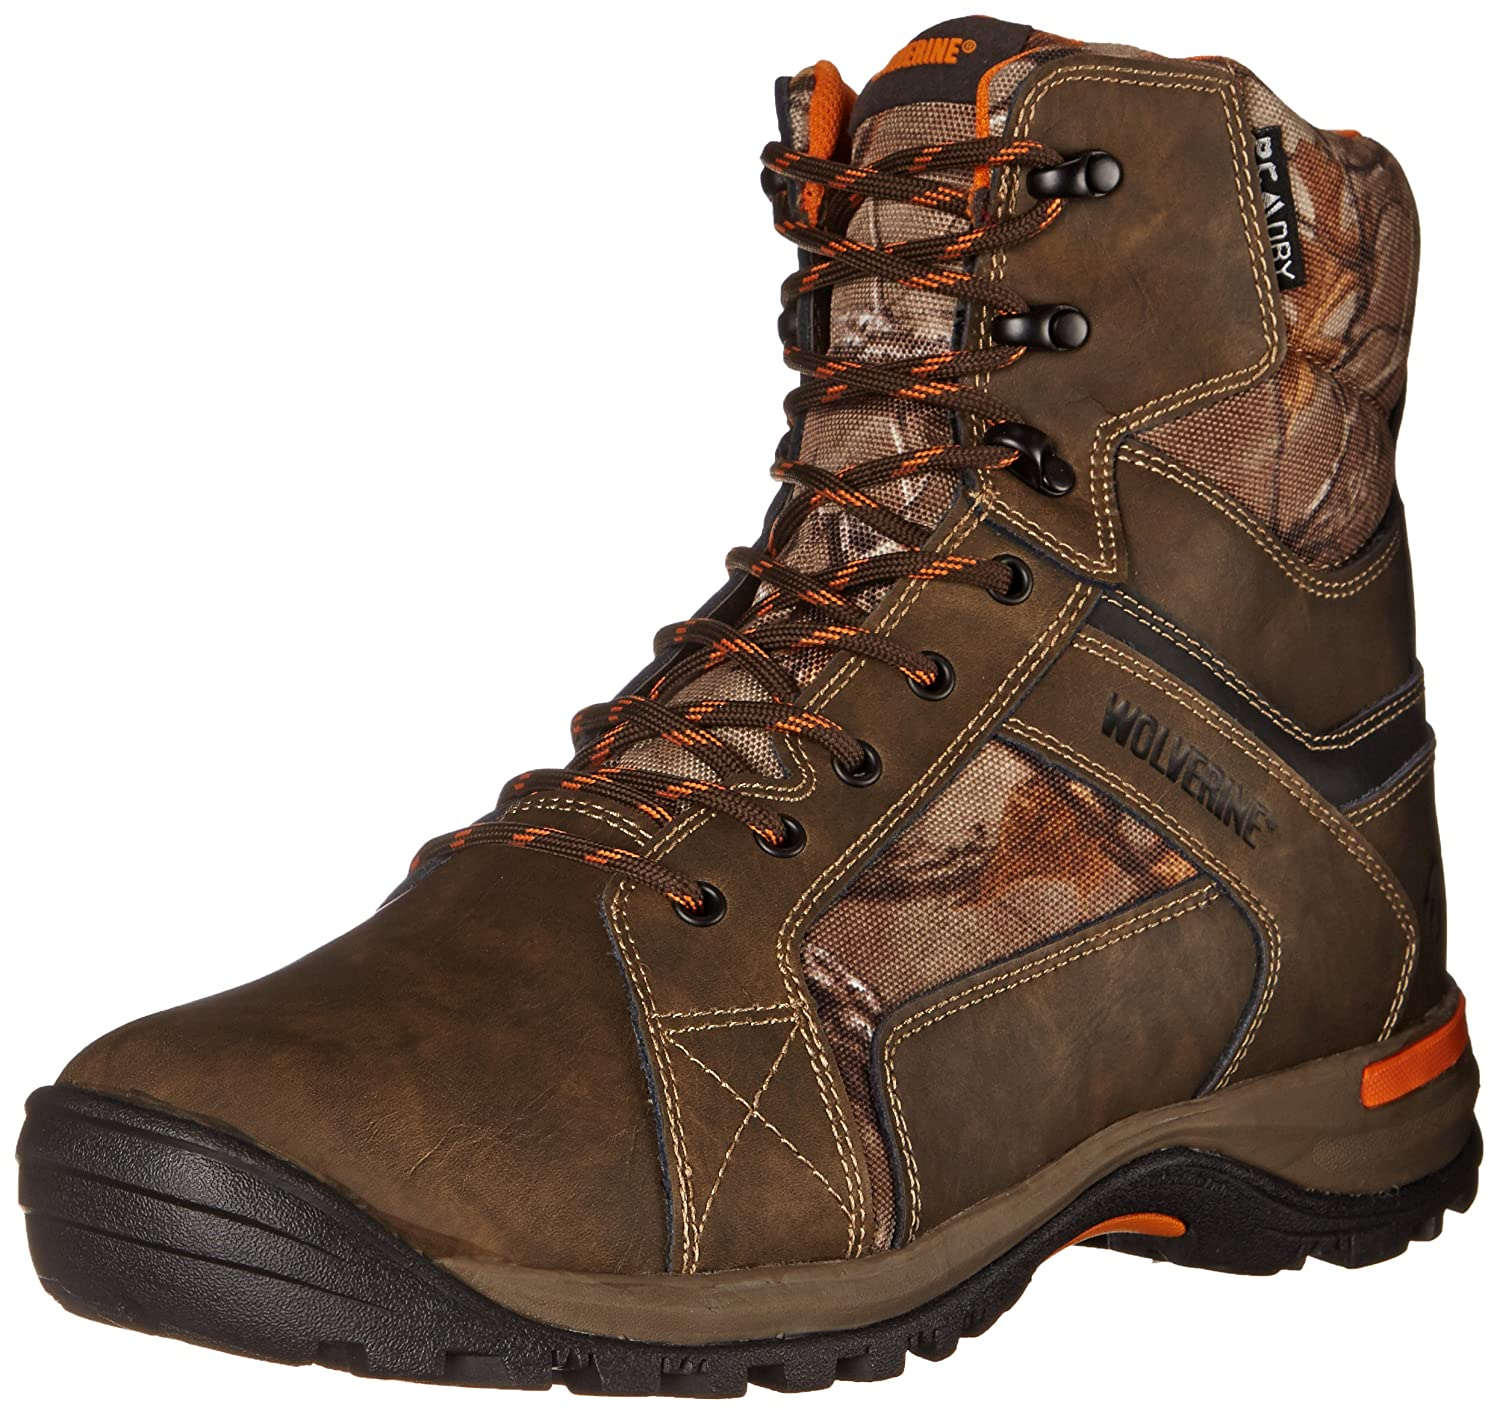 Amazon.com | Wolverine Men's Sightline High 7 Inch Hunting Boot |  Industrial & Construction Boots